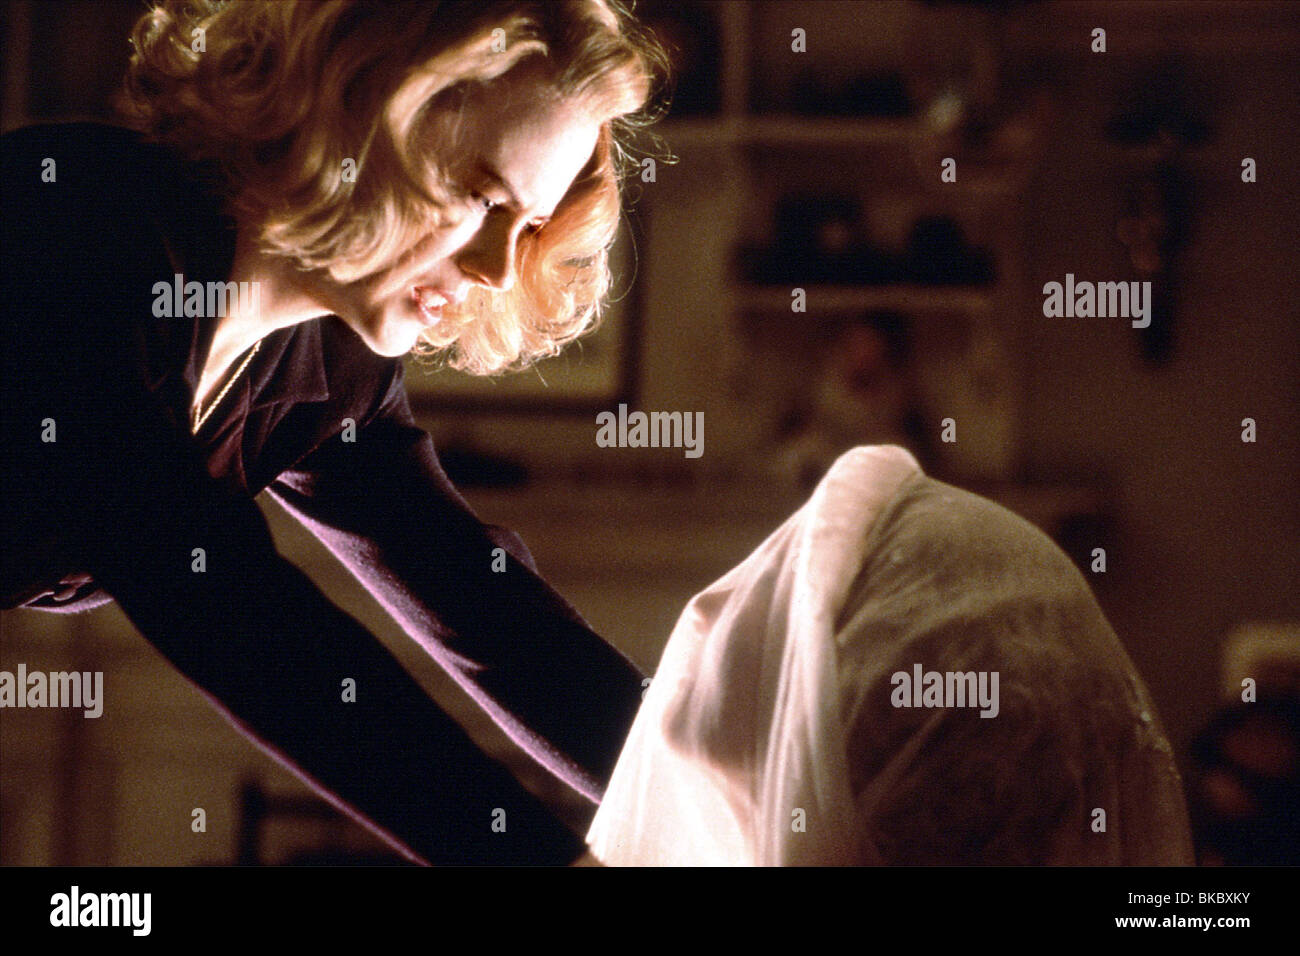 THE OTHERS NICOLE KIDMAN OTHR 001DPK 11 - Stock Image